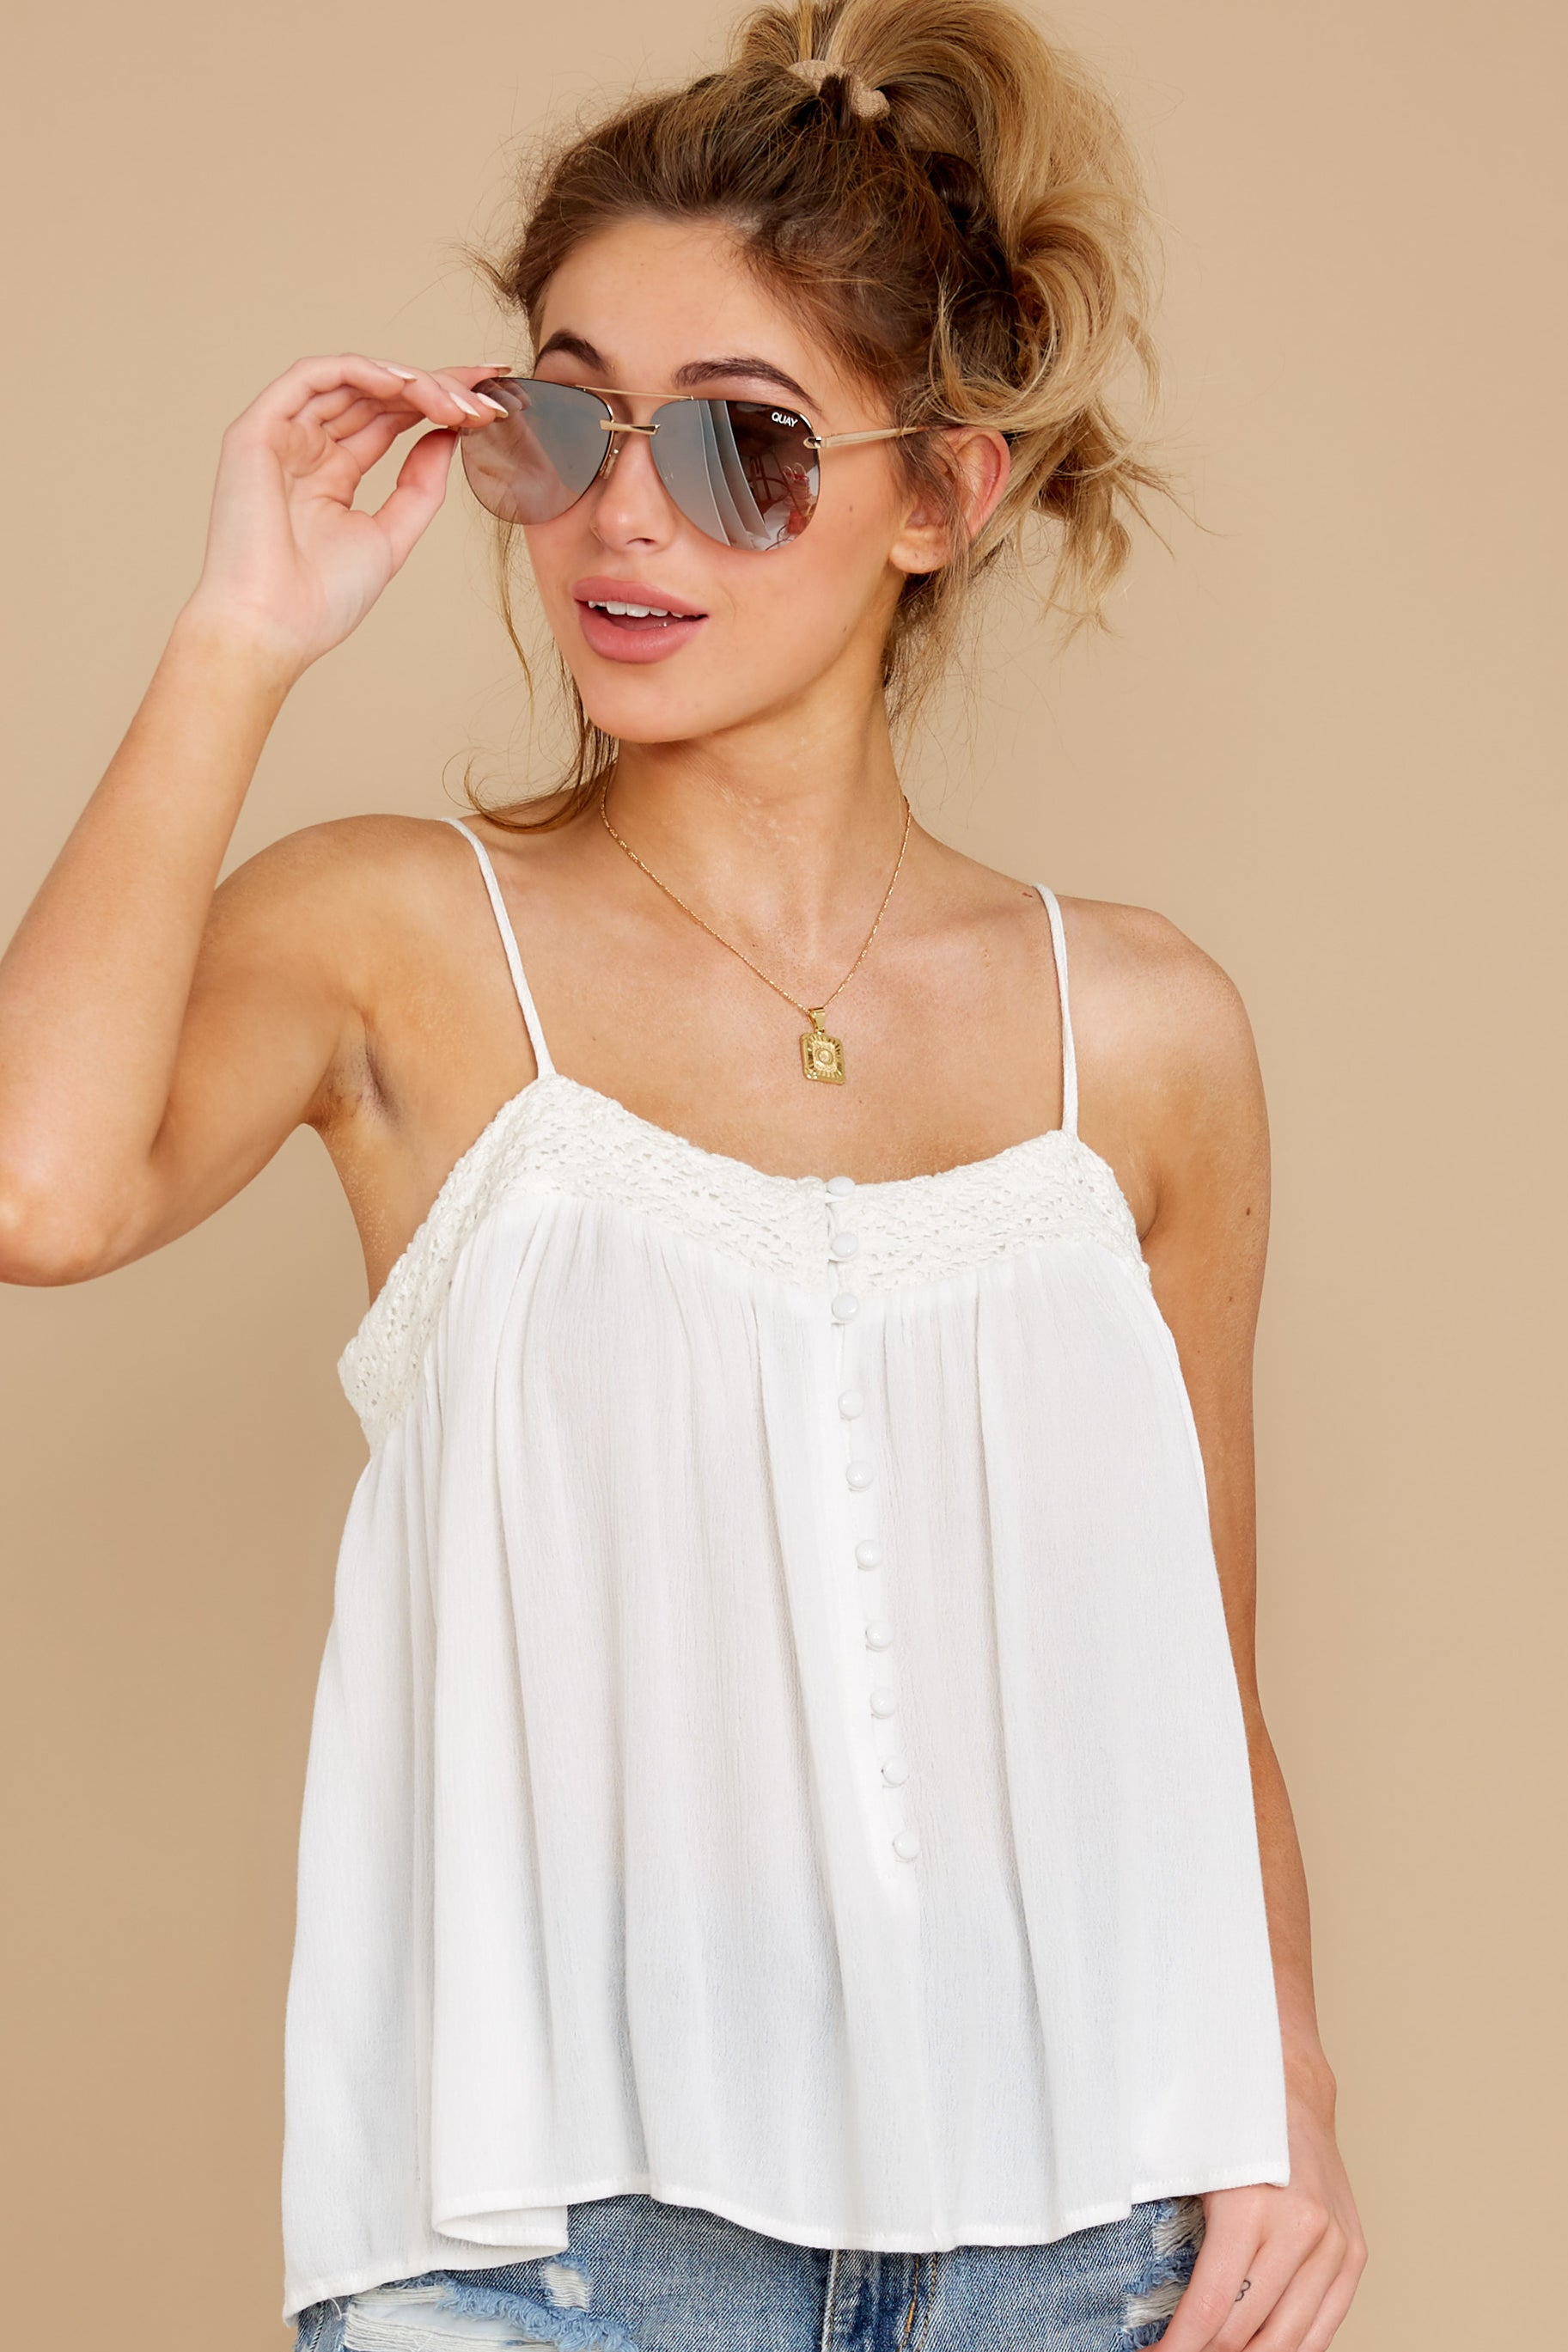 1 Without Us White Crochet Tank Top at reddress.com